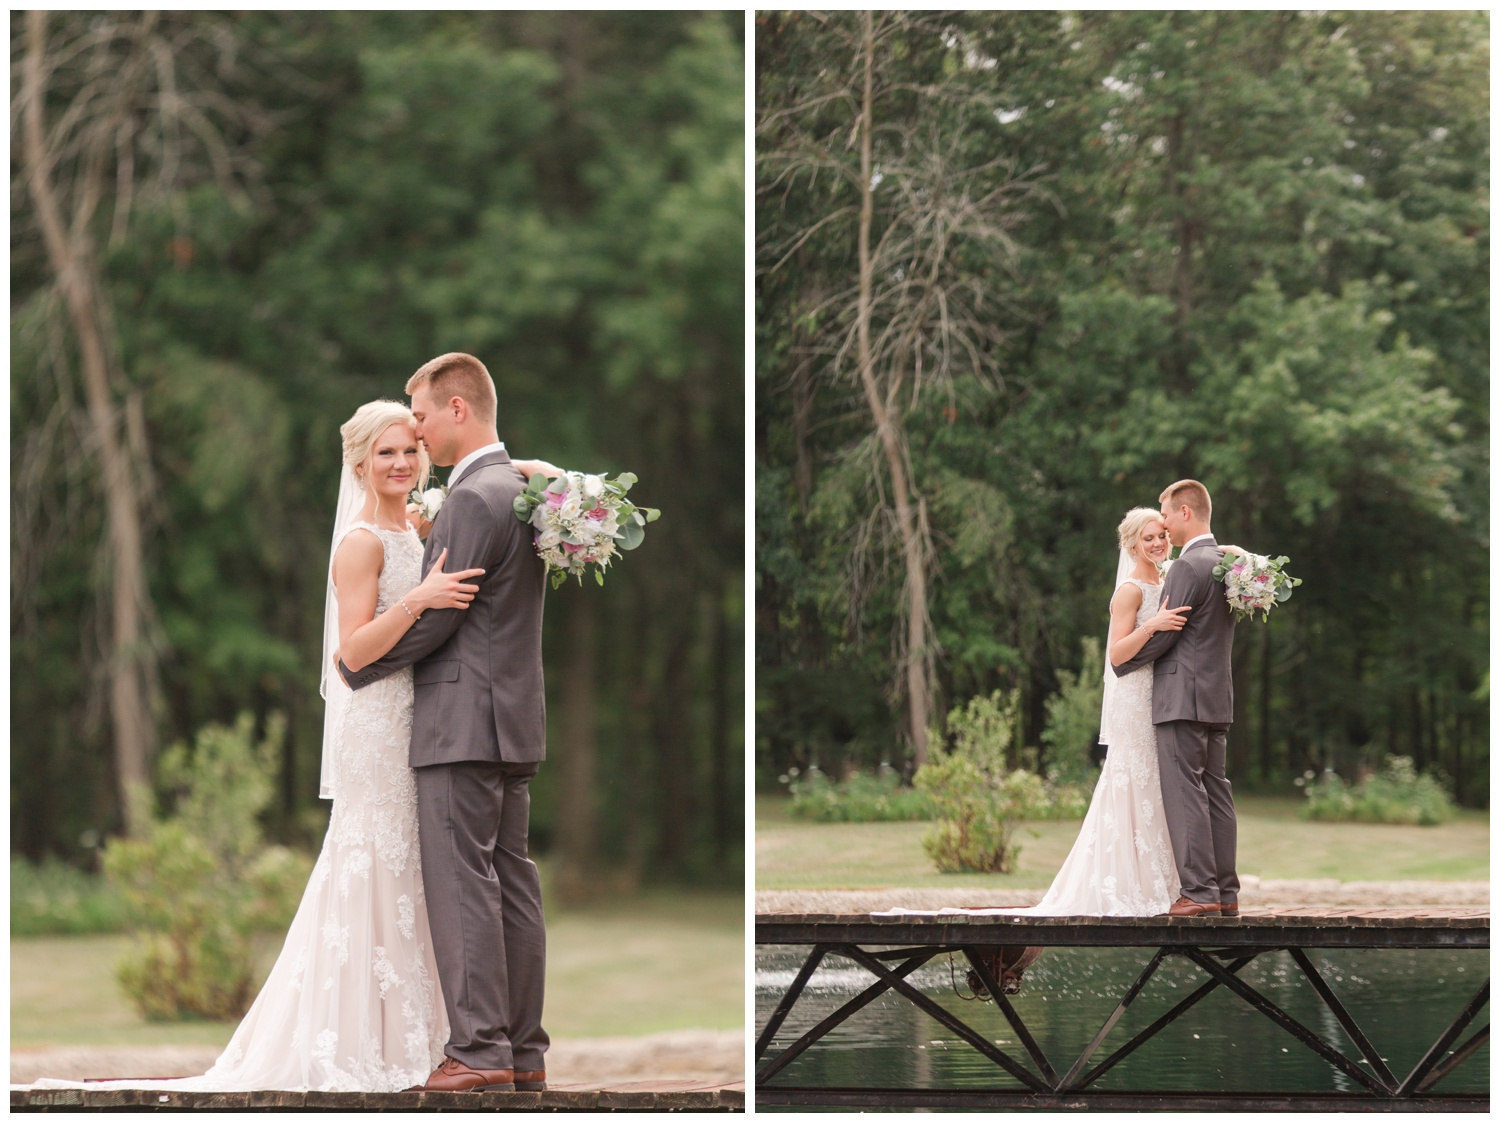 meghan marie studio wedding photographer ohio troy dayton columbus small town rustic rural farm cows vintage mauves dusty rose pinks whites ivorys grays f1 sound paper lanterns pearls_0635.jpg